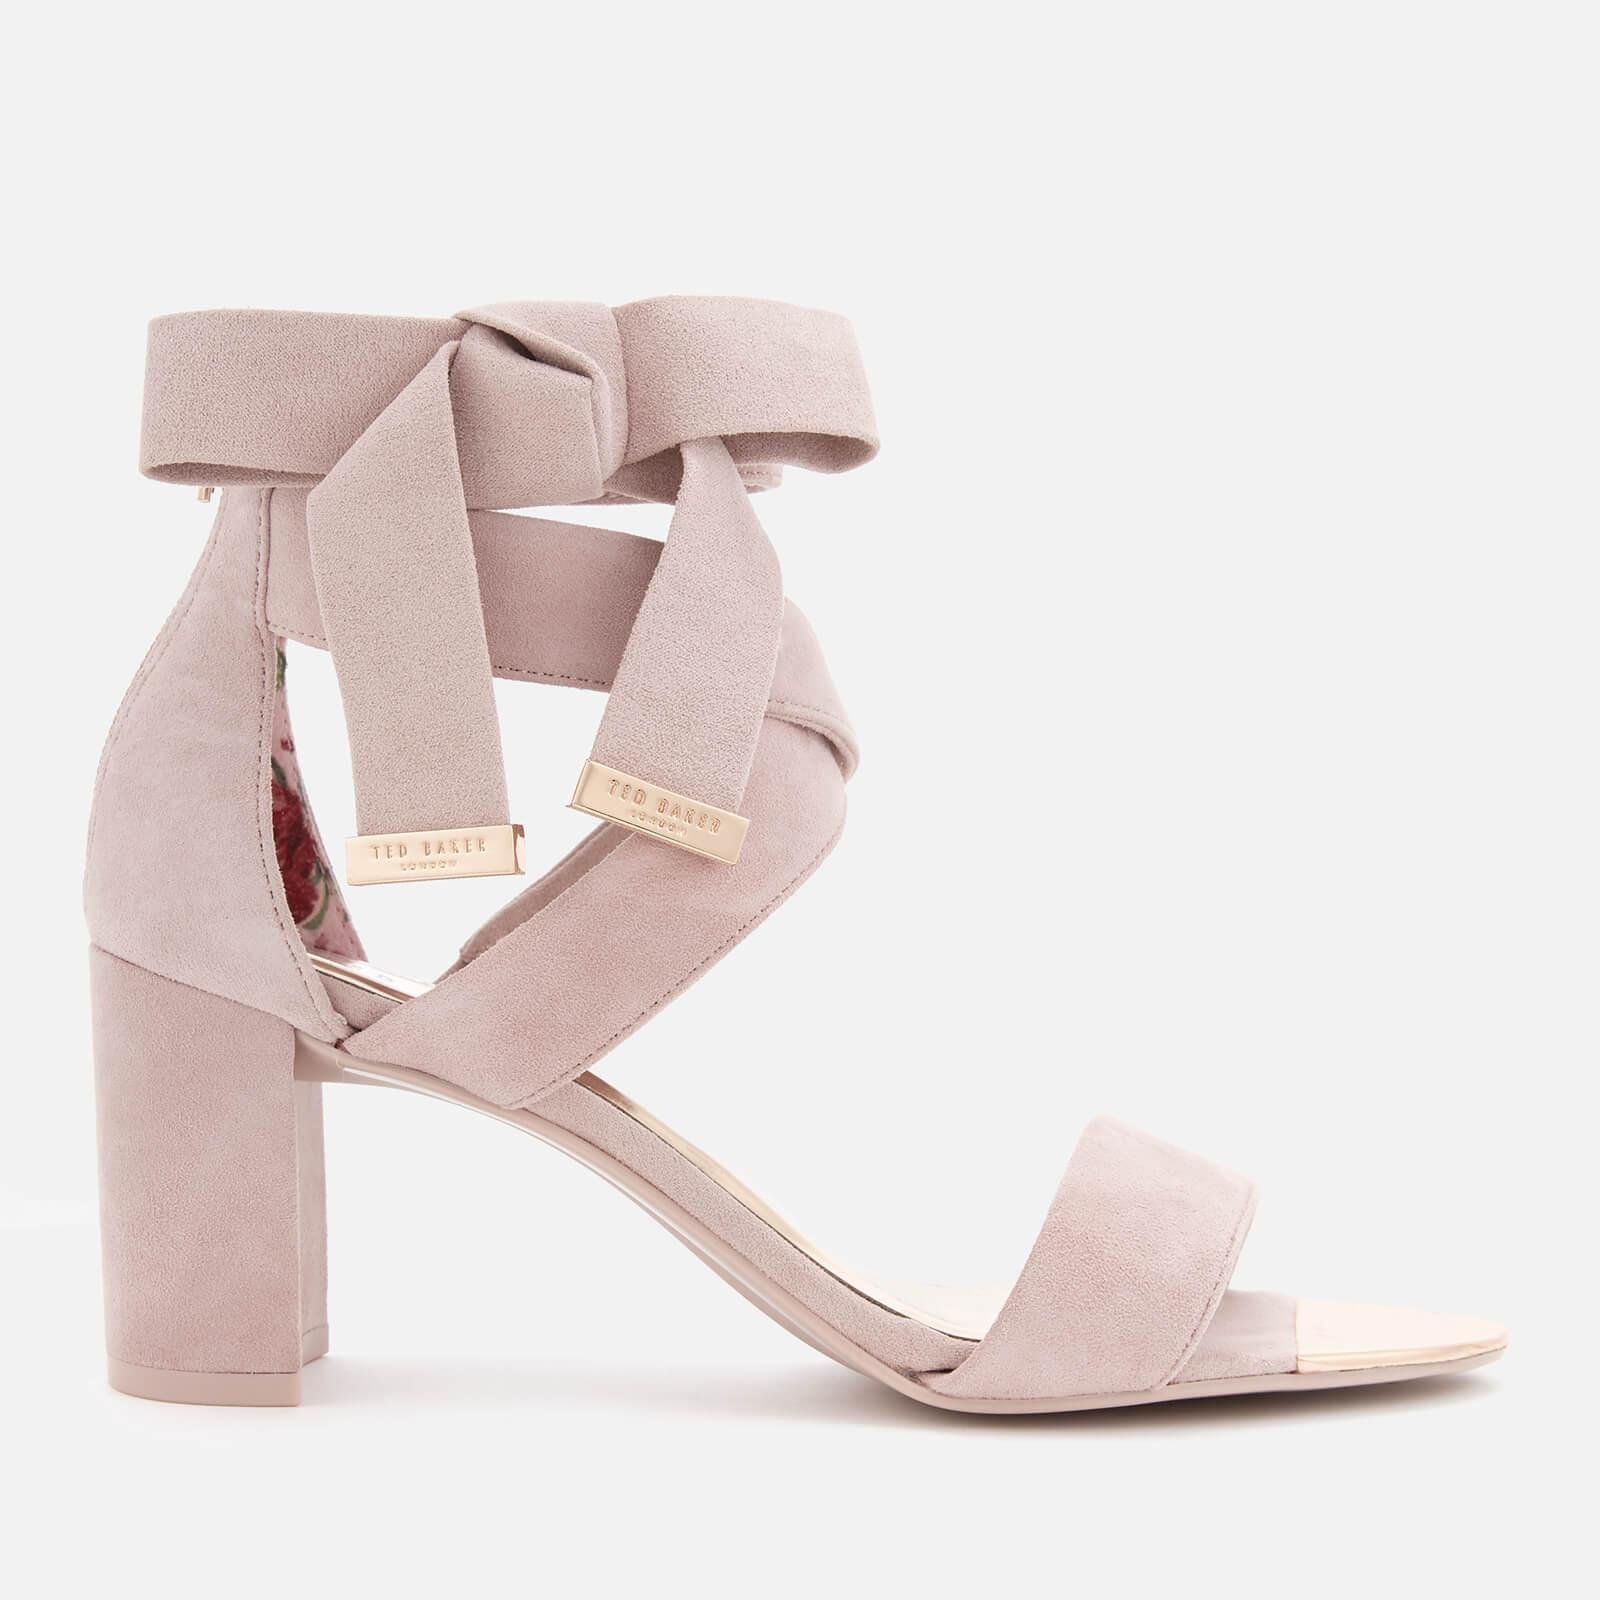 72a62813bf08 Lyst - Ted Baker Noxen 2 Suede Block Heeled Sandals in Pink